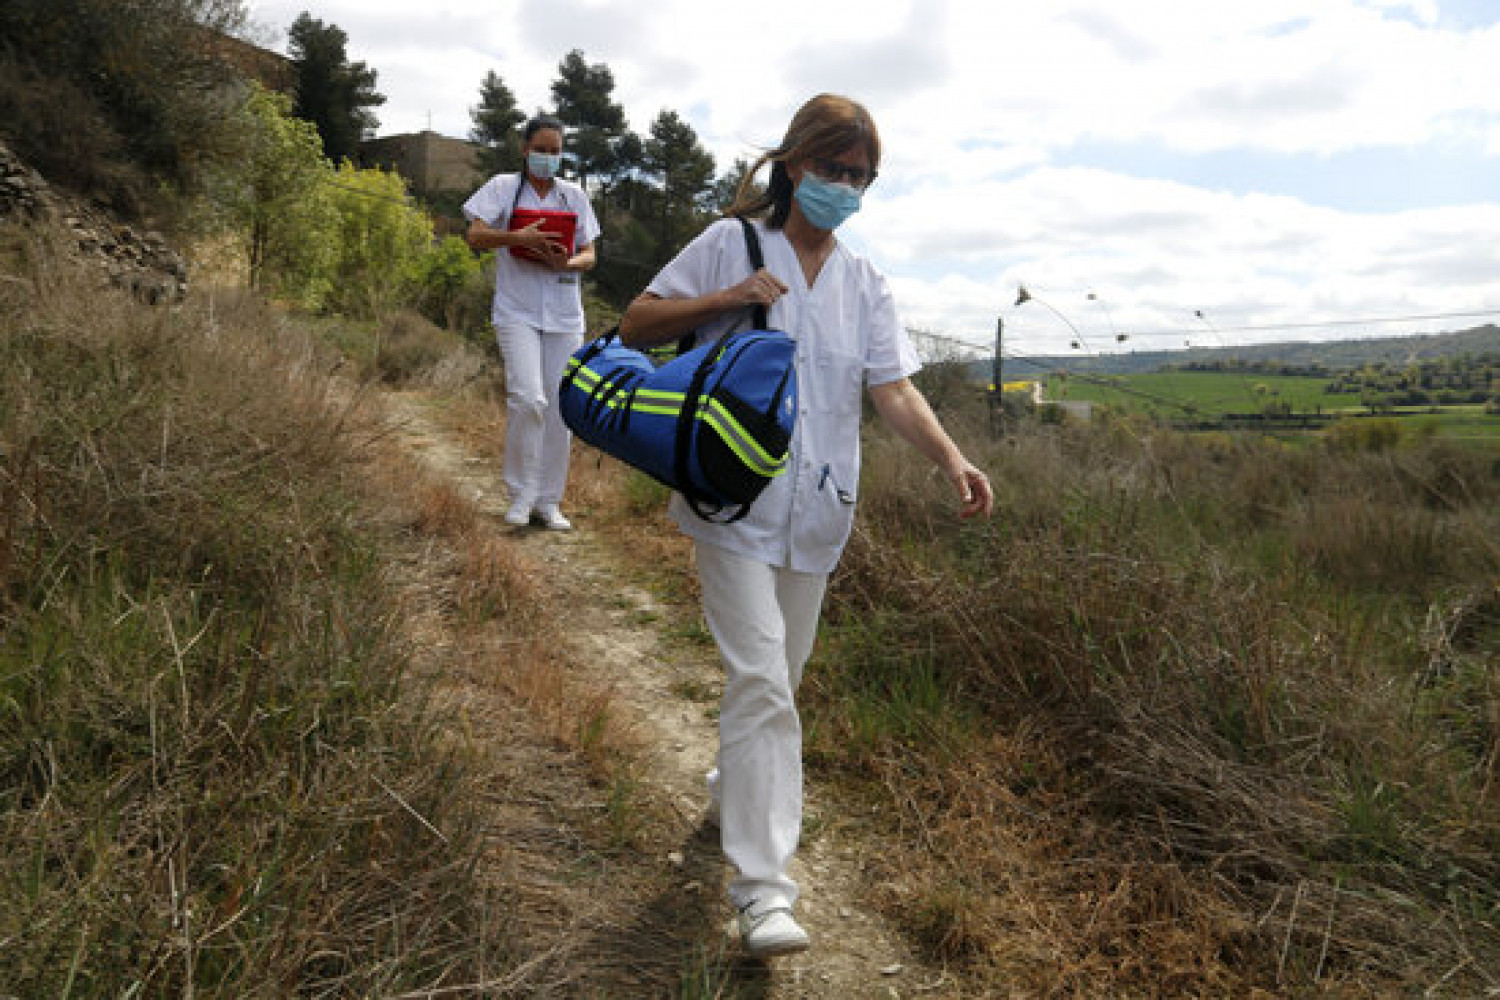 Health professionals walking on a rural pathway delivering vaccines to the village of Ivorra in central Catalonia (by Oriol Bosch)